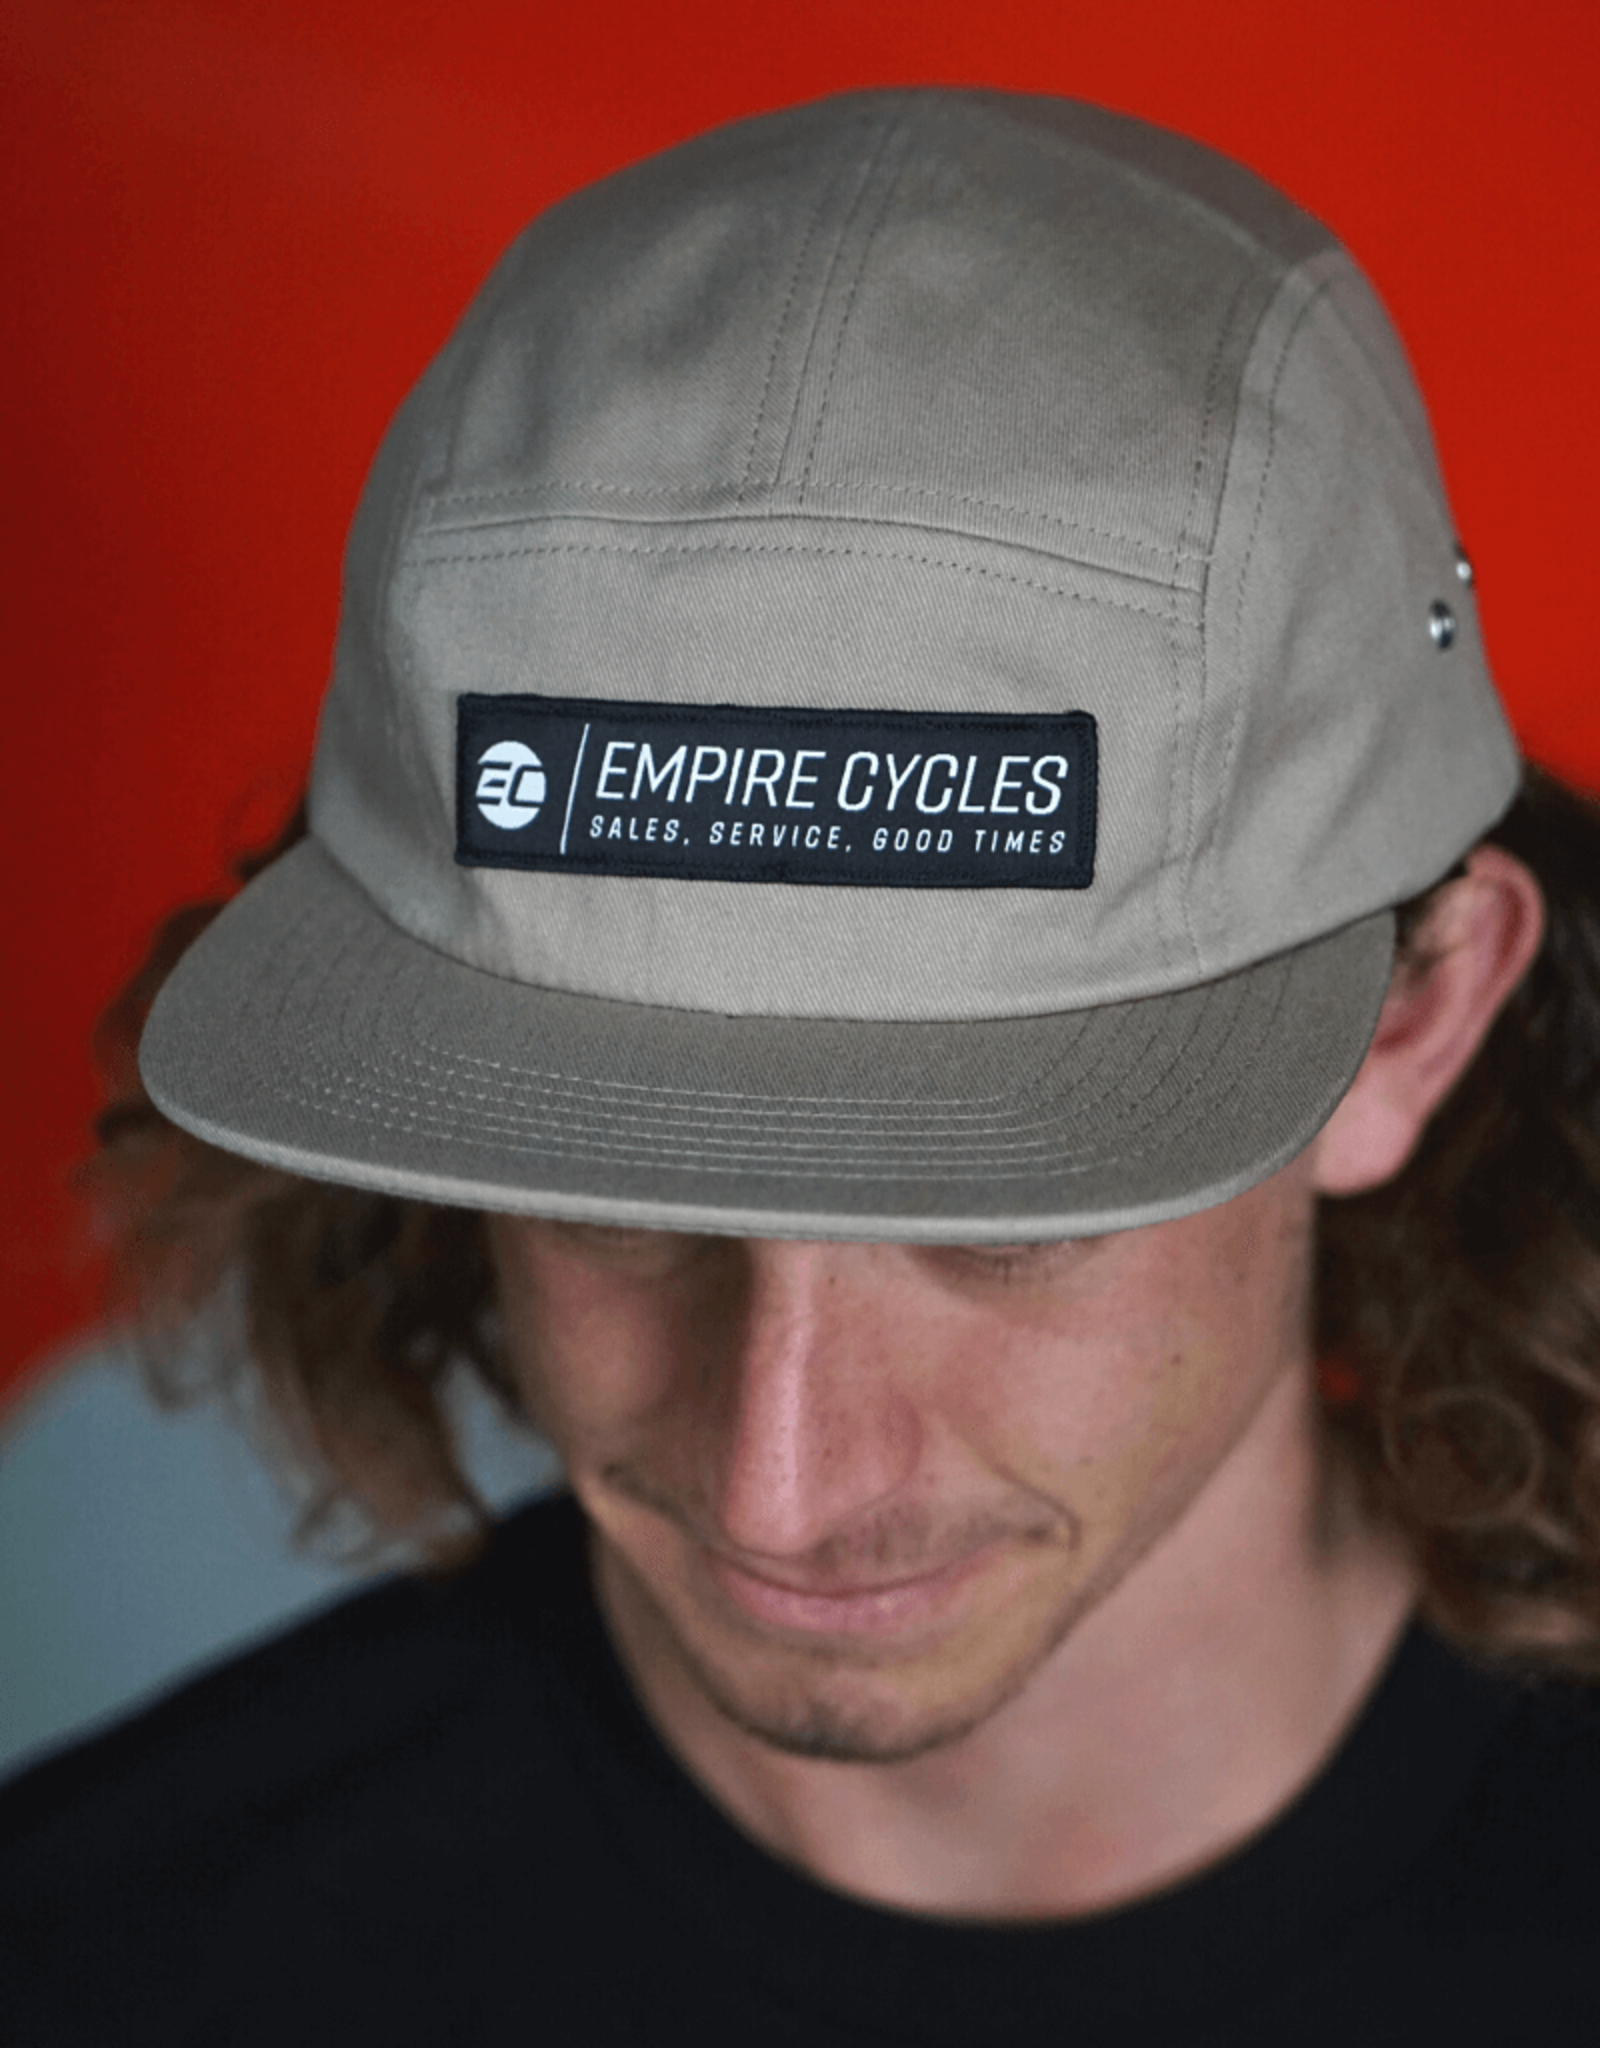 Empire Cycles Empire Sales Service 5 Panel Hat